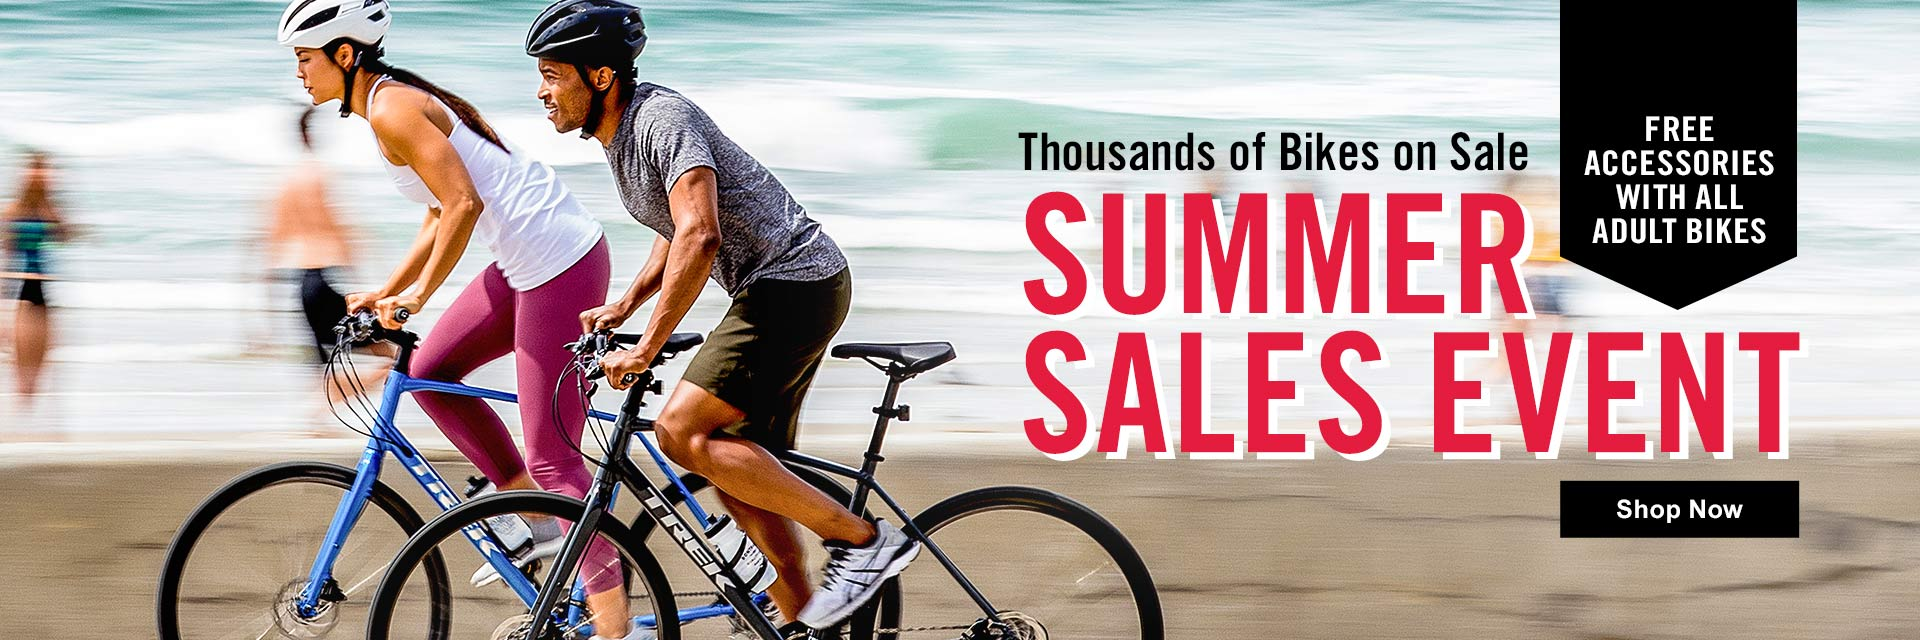 Summer Sales Event - Going On Now